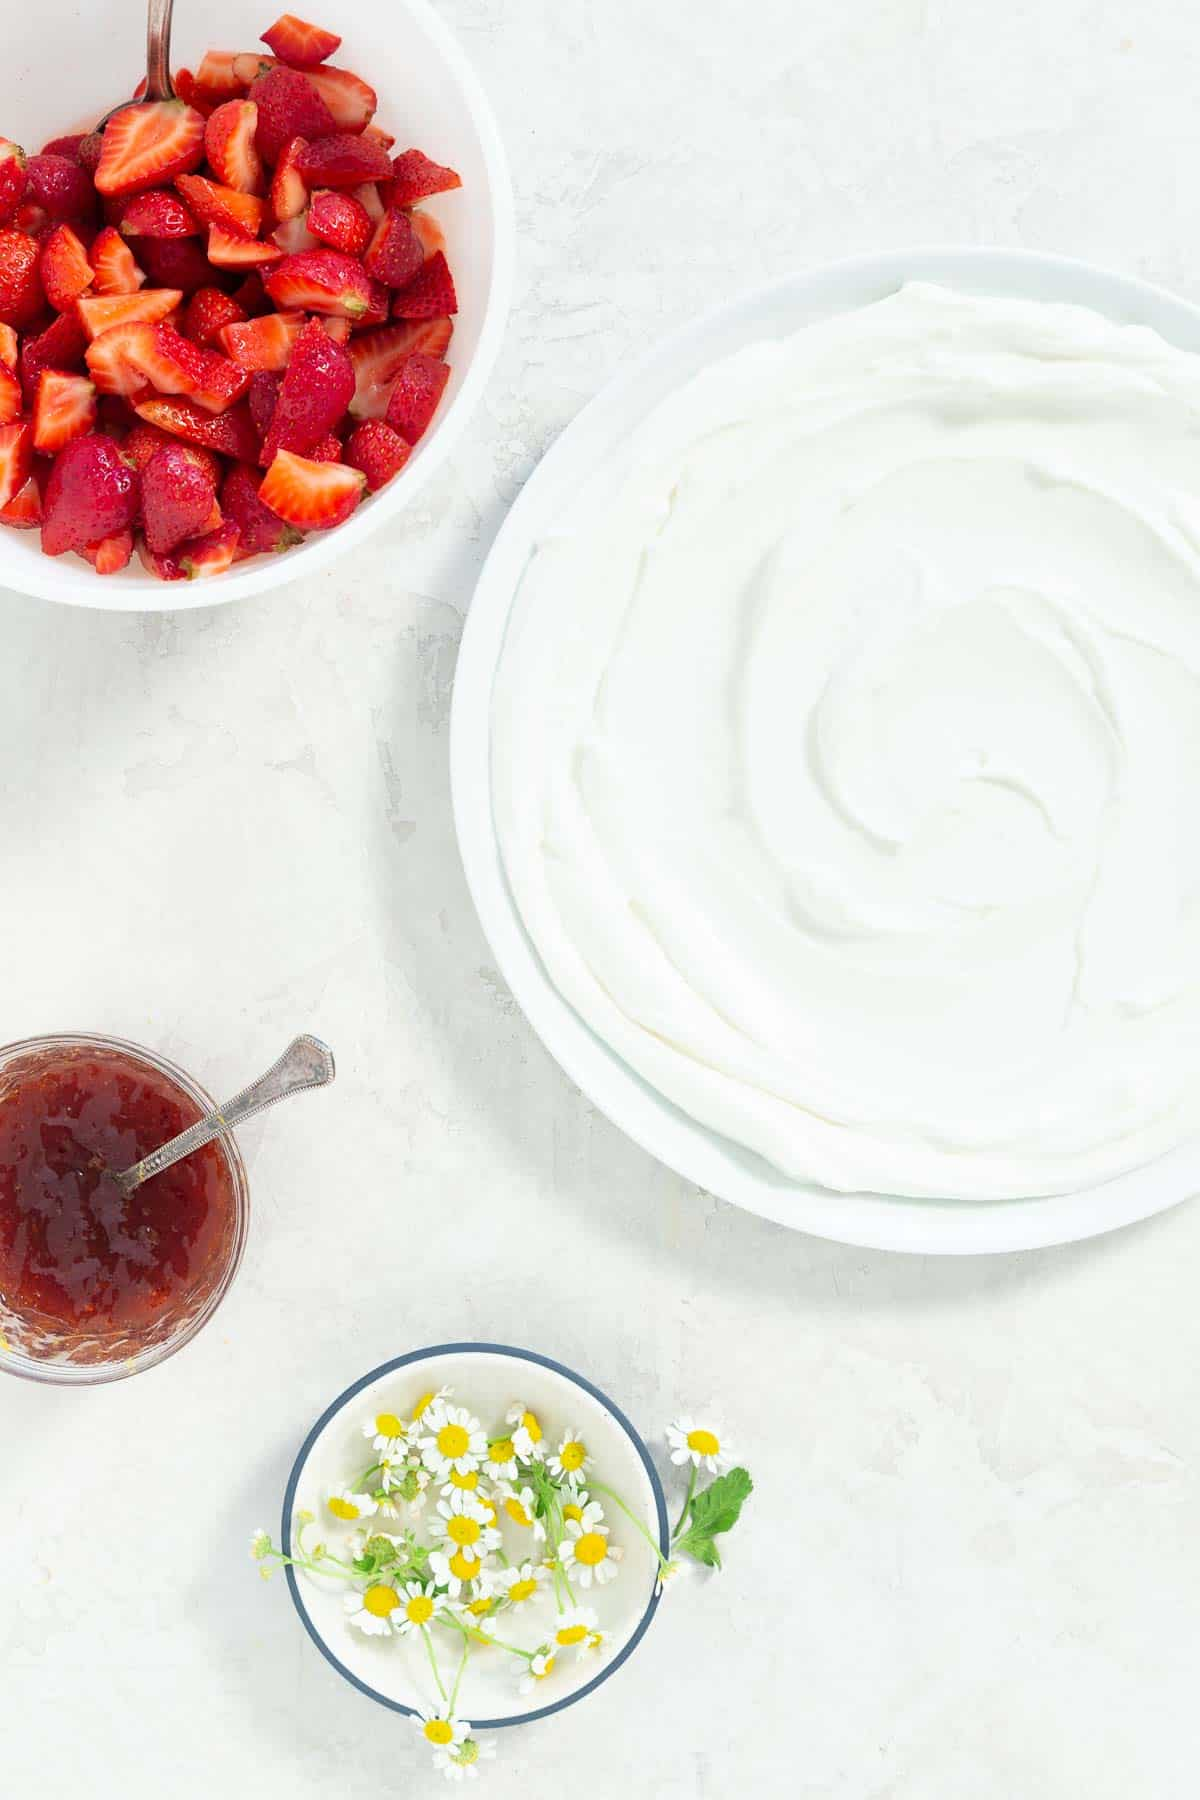 Yogurt spread on a large white serving plate. Fresh chamomile flowers, strawberry jam, and fresh strawberries in separate bowls on the side.